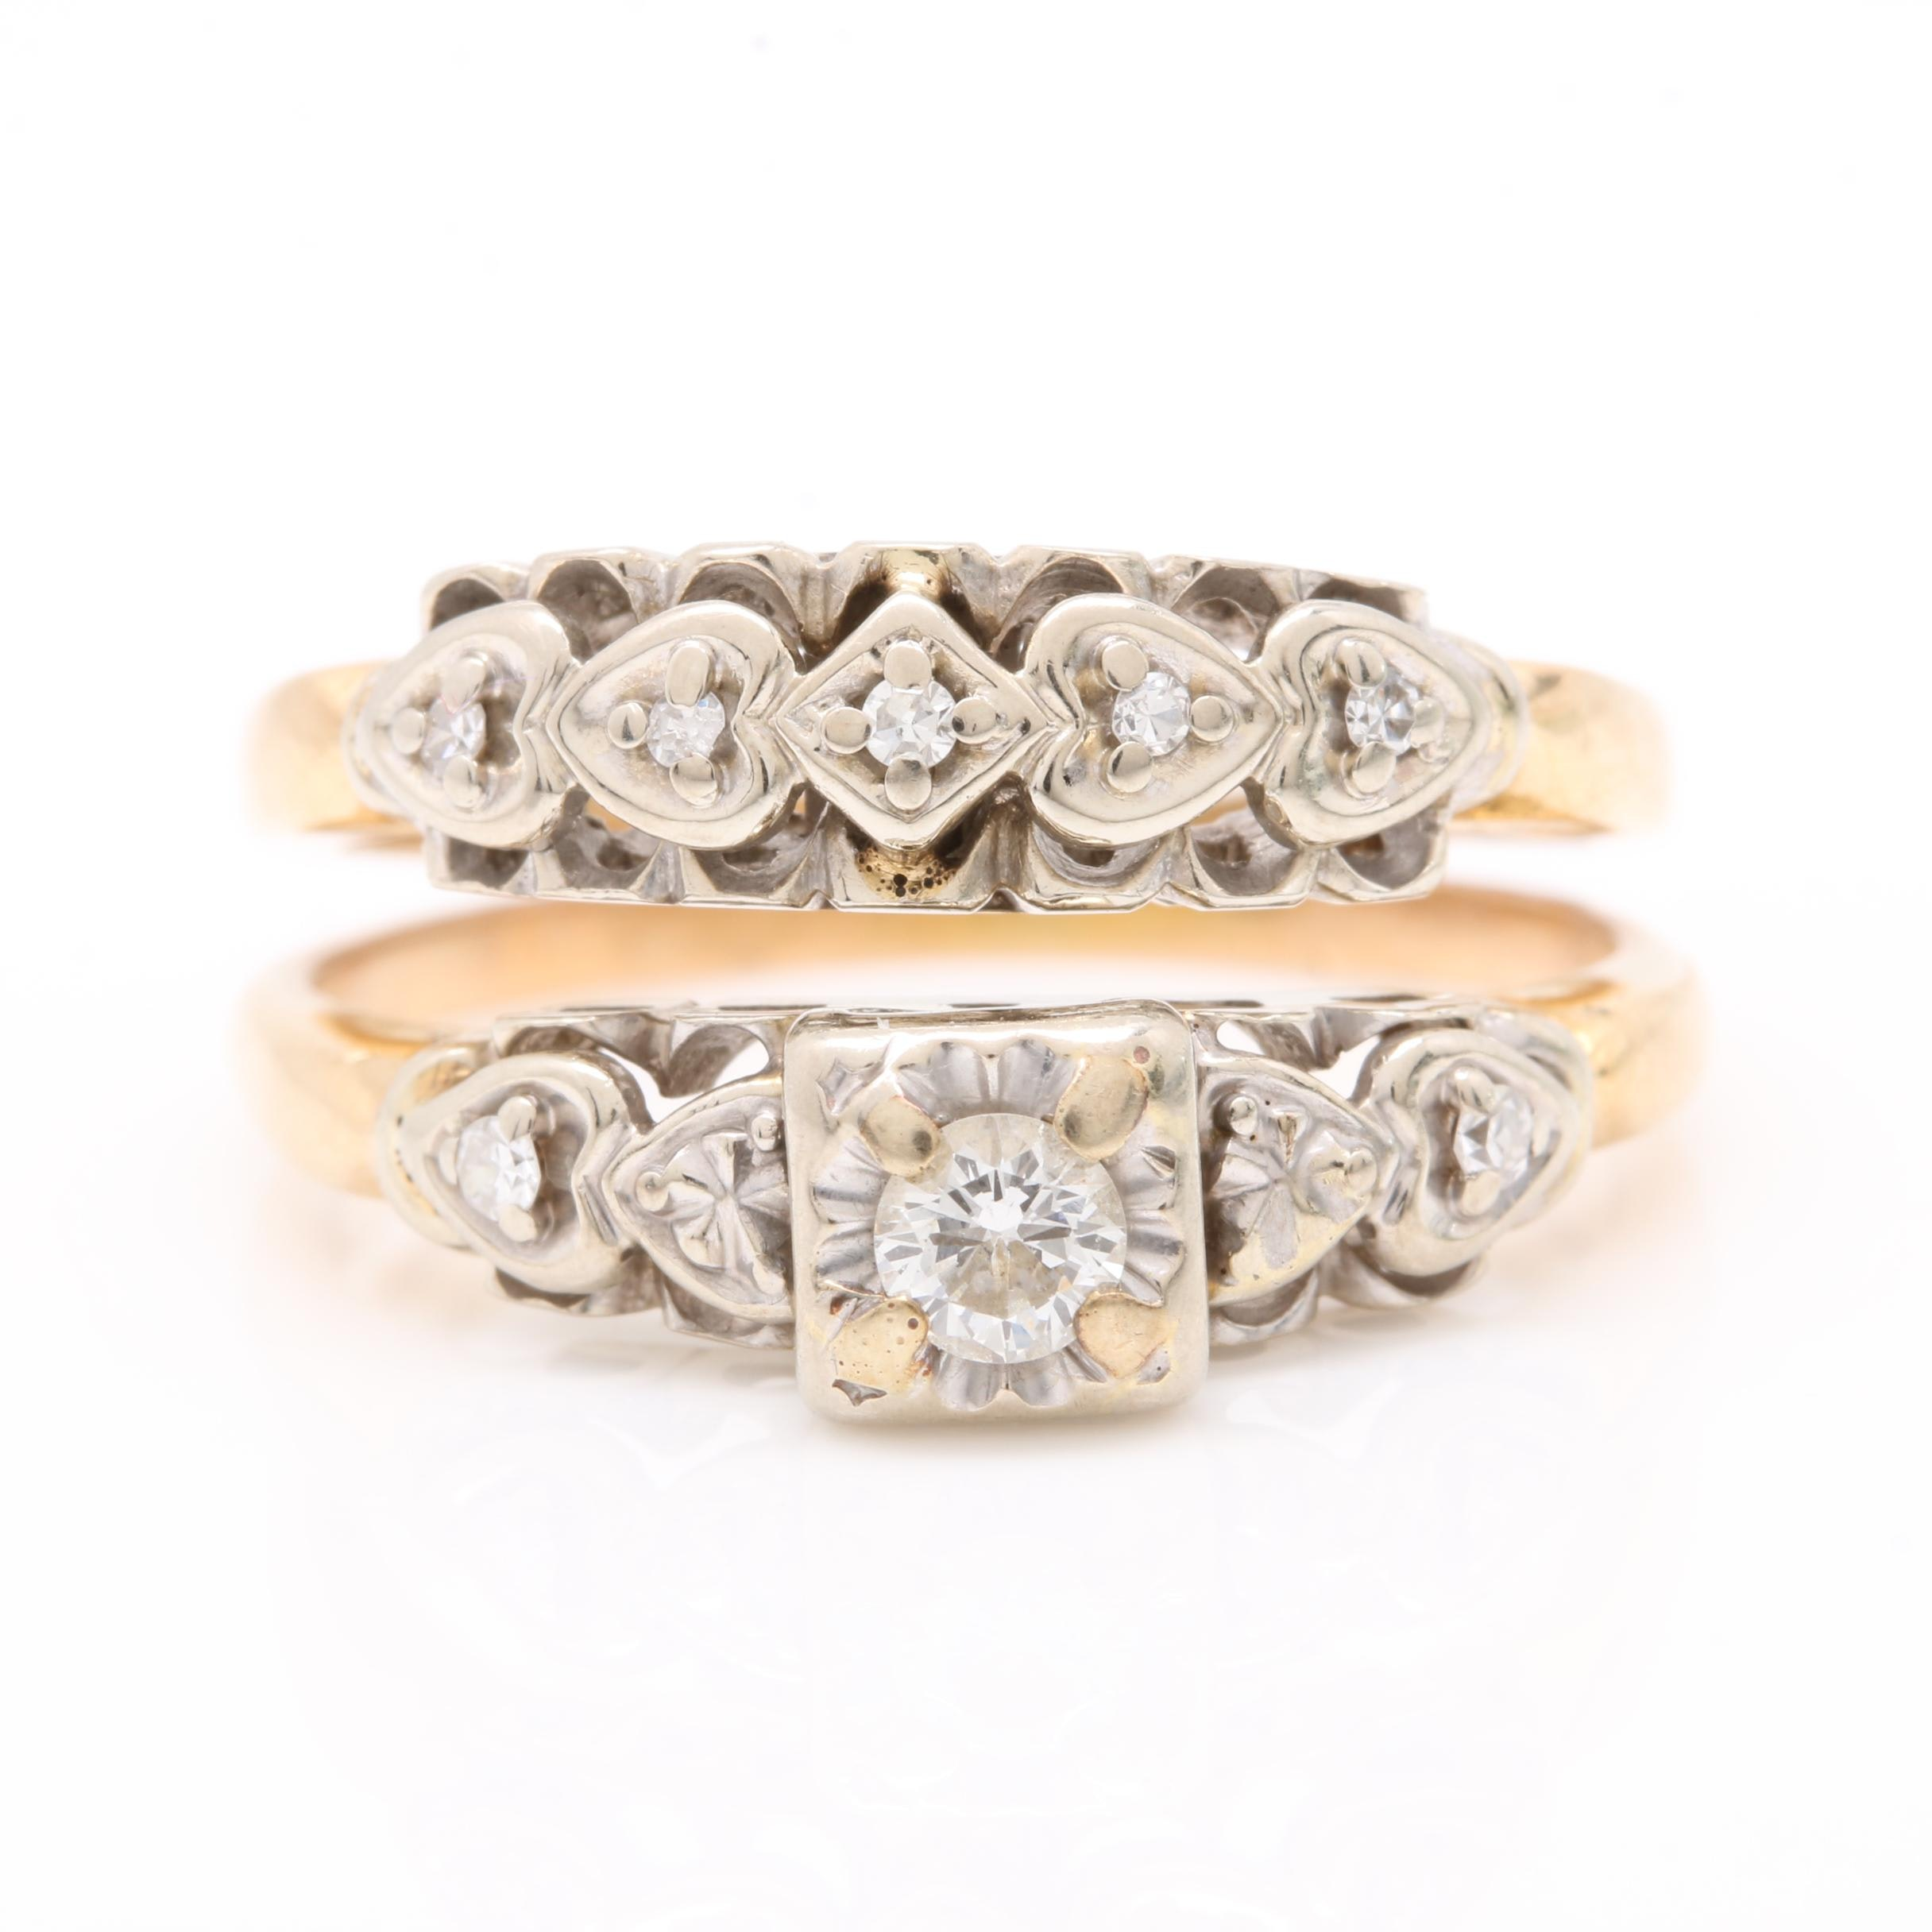 14K Yellow Gold Diamond Bridal Ring Set with 14K White Gold Settings